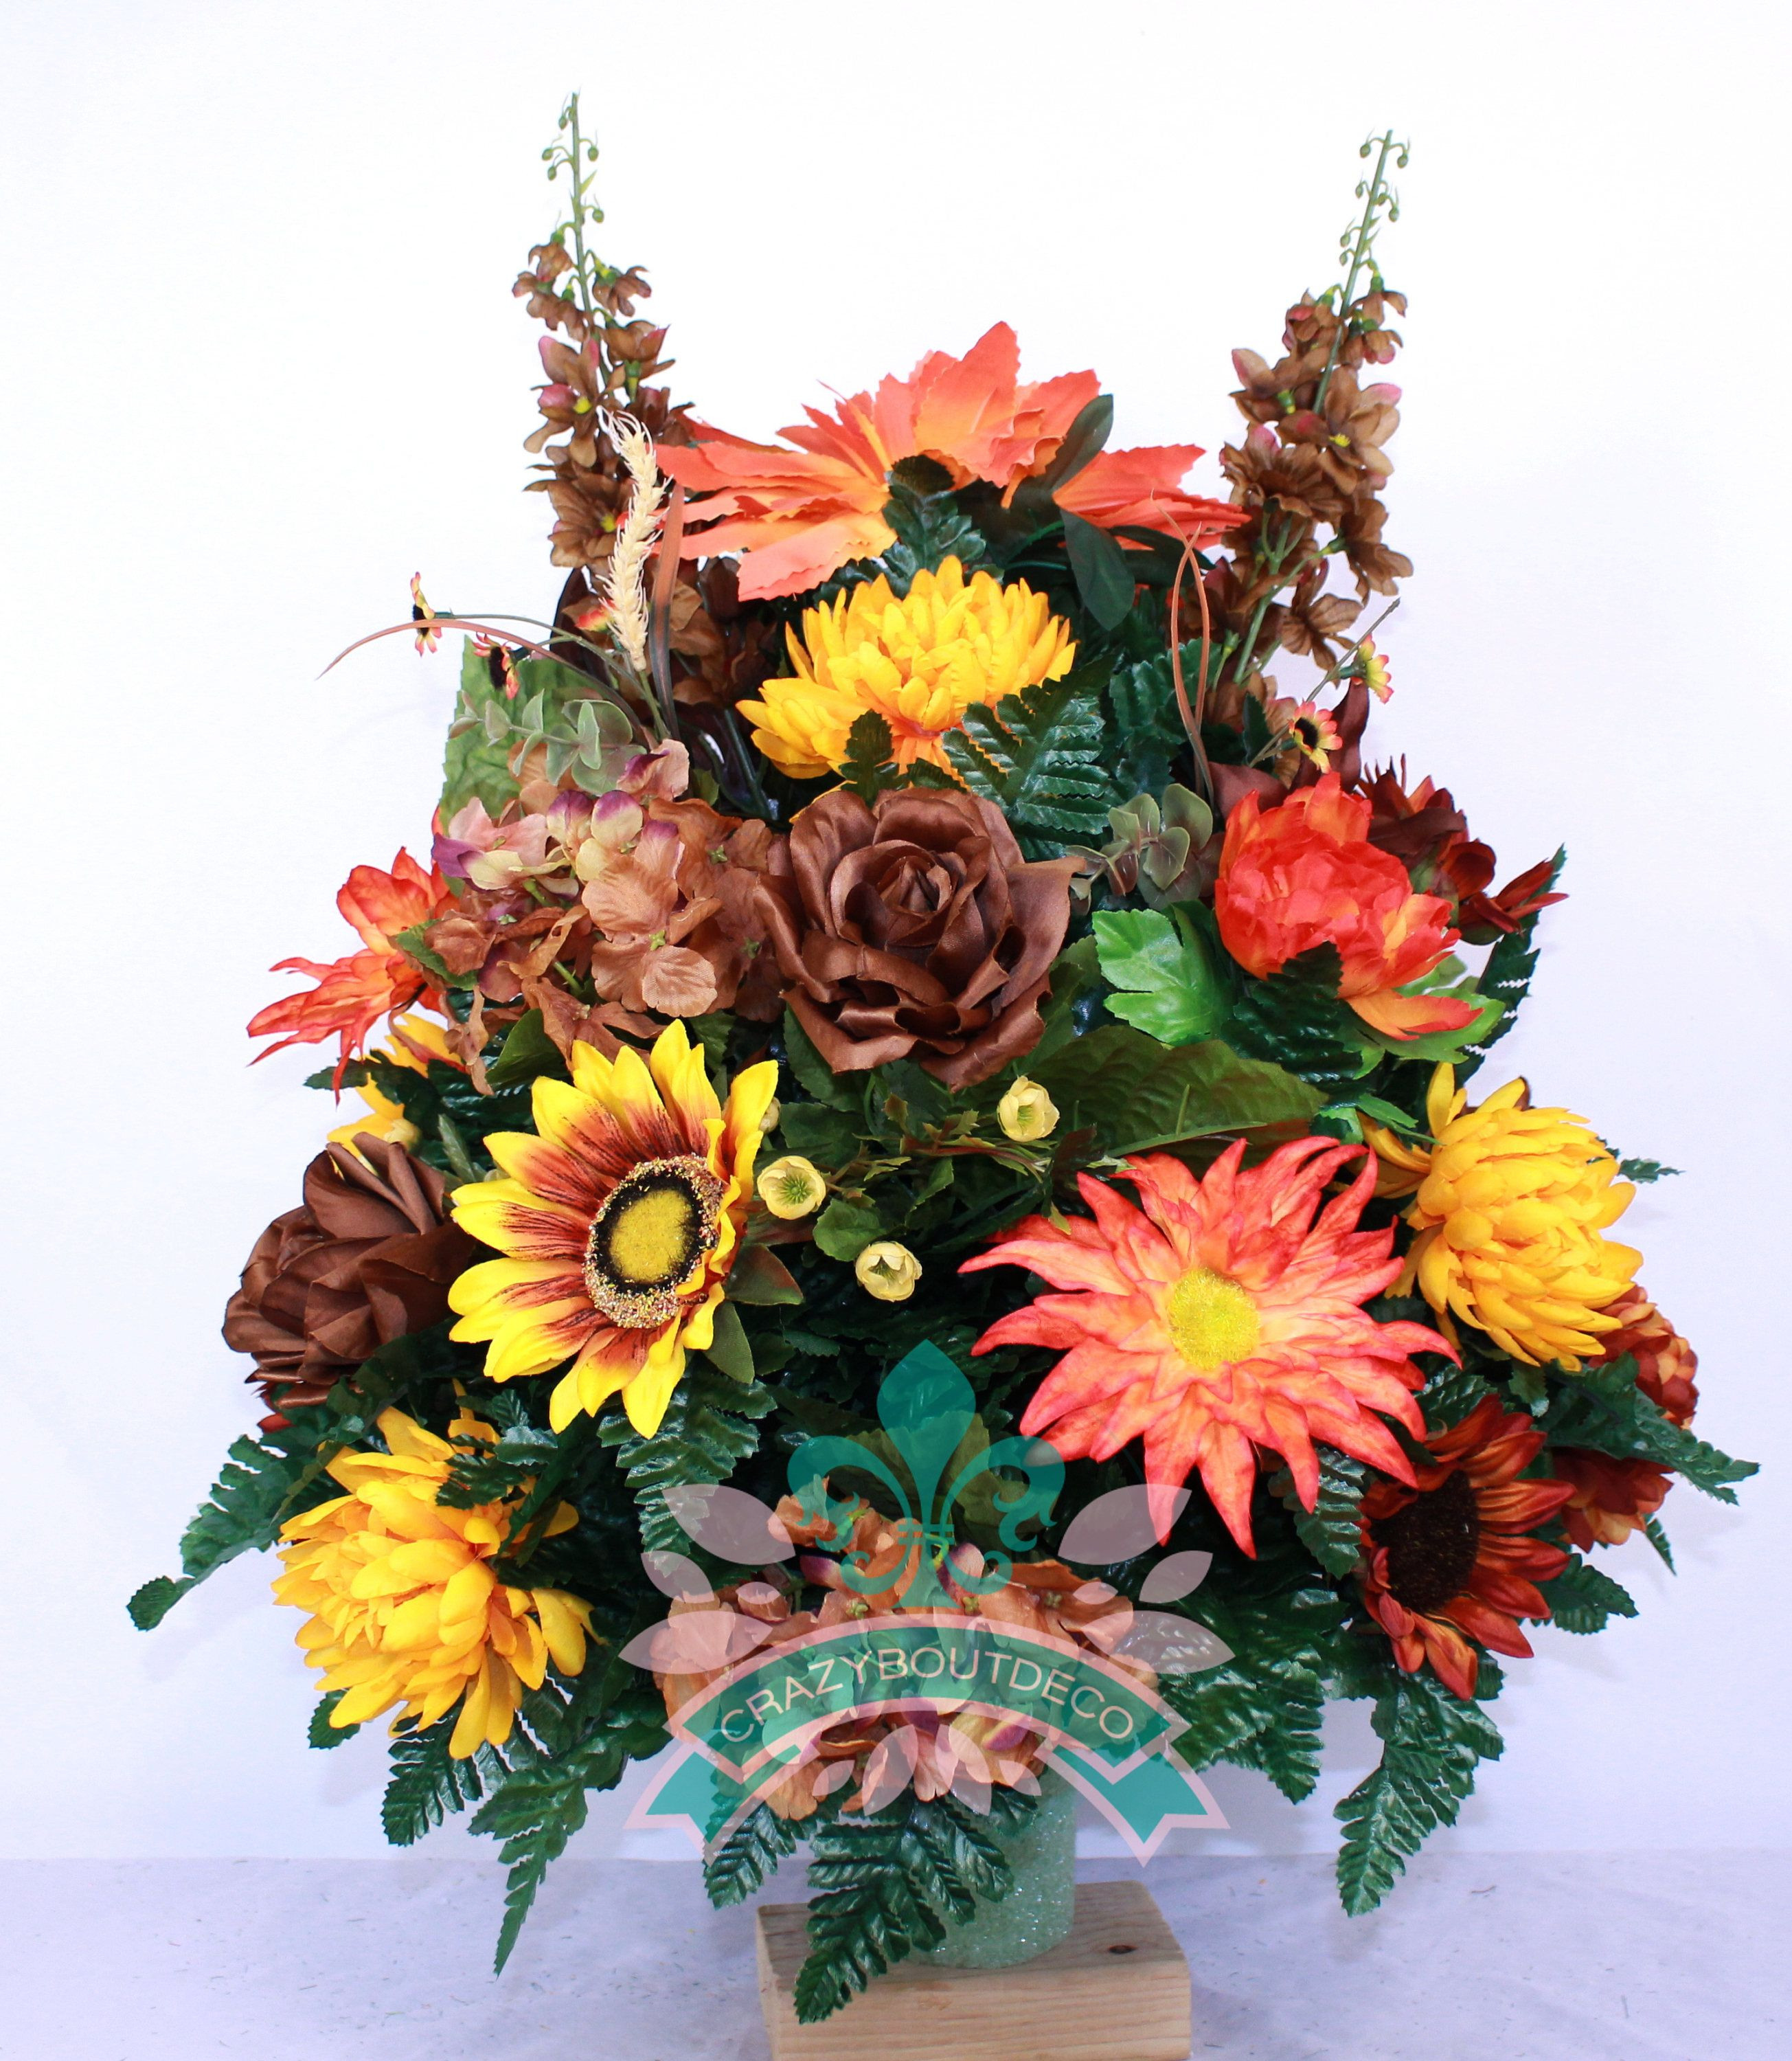 flower vase for grave marker of beautiful xl fall flower mixture cemetery arrangement for 3 inch in beautiful xl fall flower mixture cemetery arrangement for 3 inch vase by crazyboutdeco on etsy